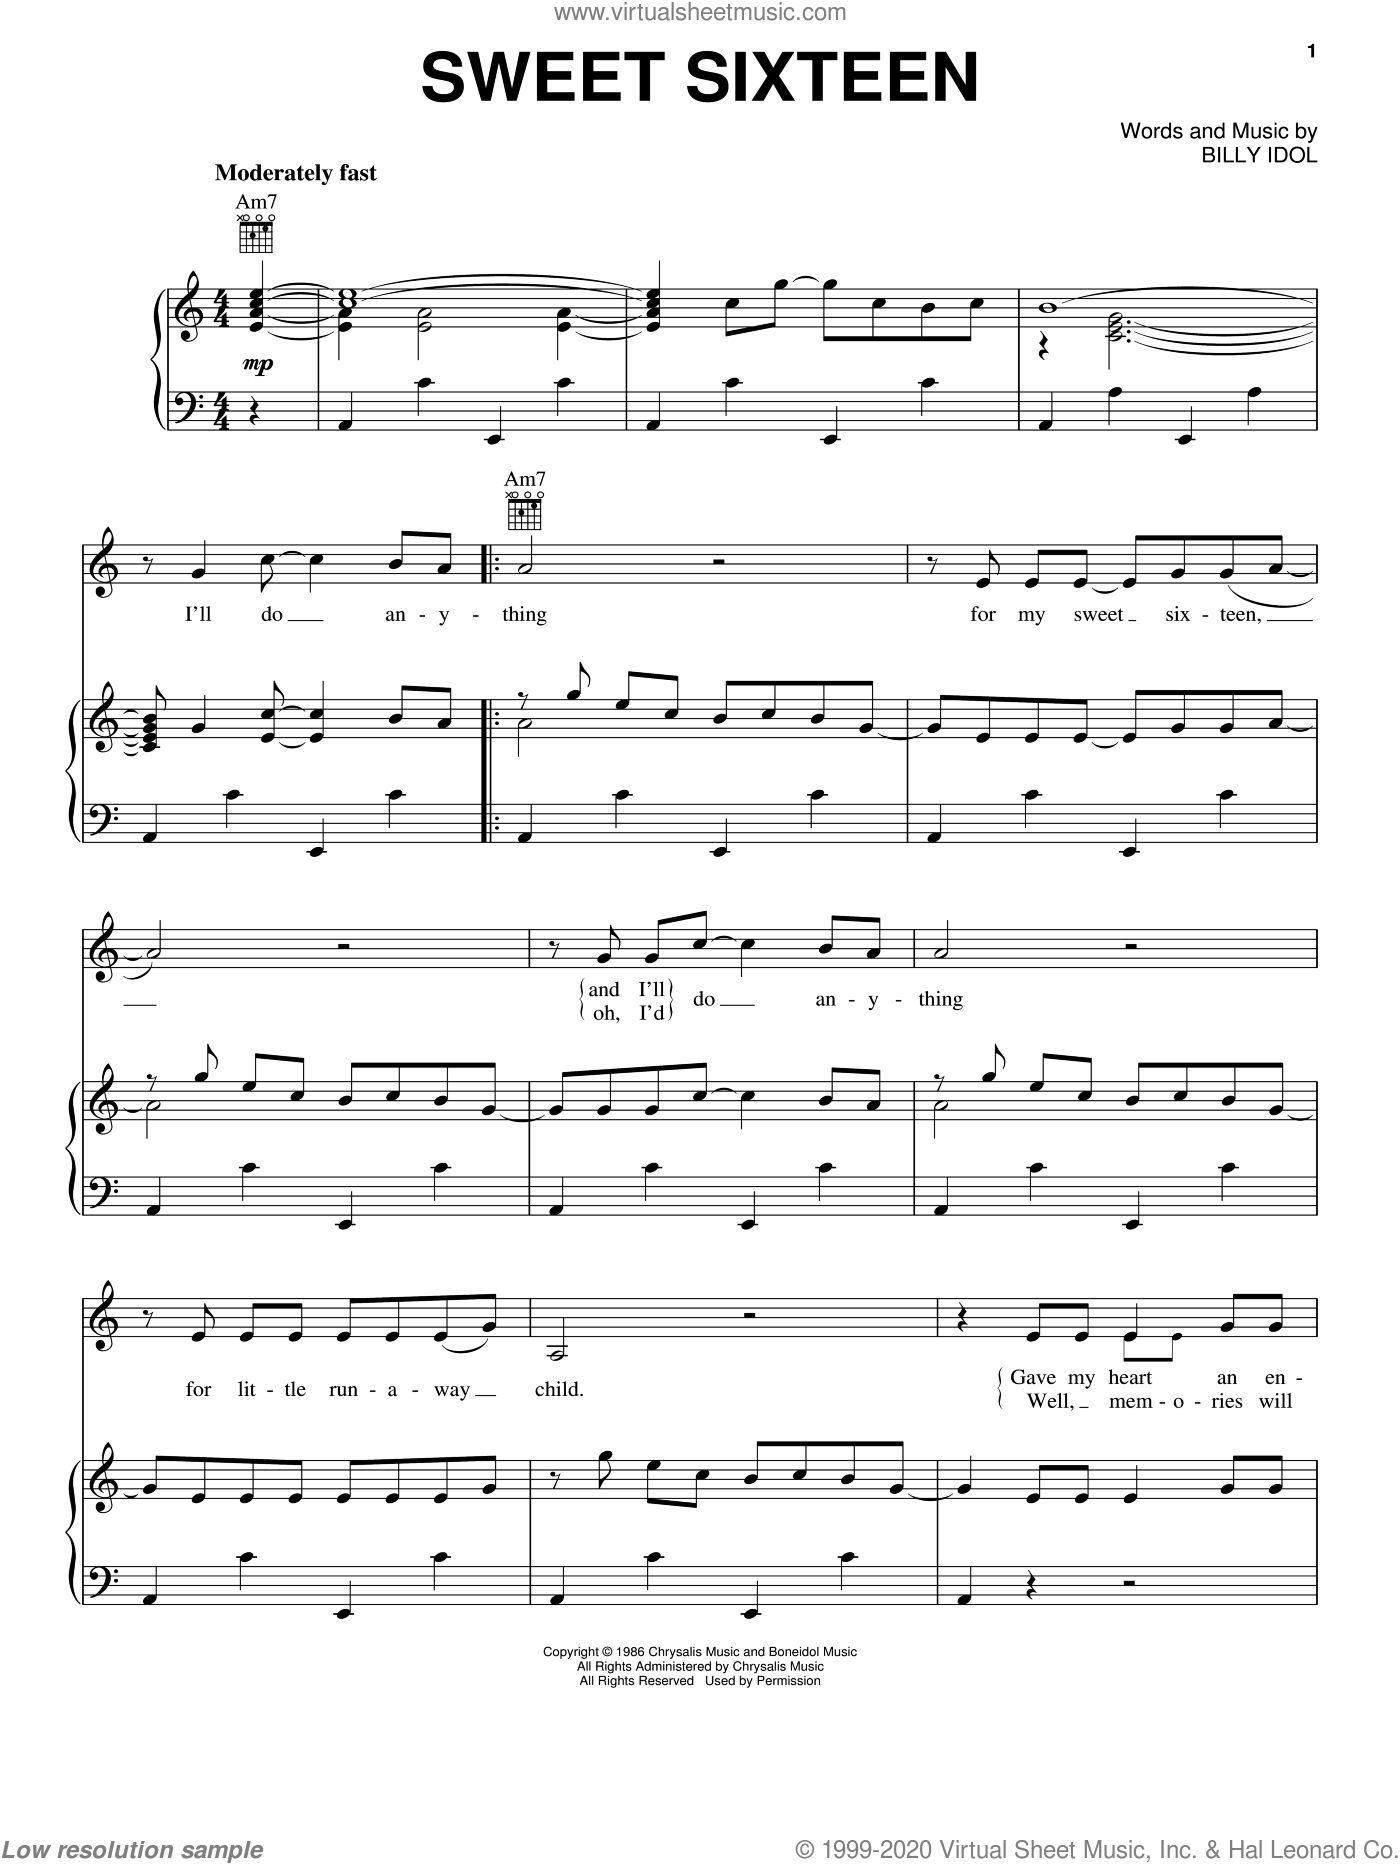 Sweet Sixteen sheet music for voice, piano or guitar by Billy Idol, intermediate skill level